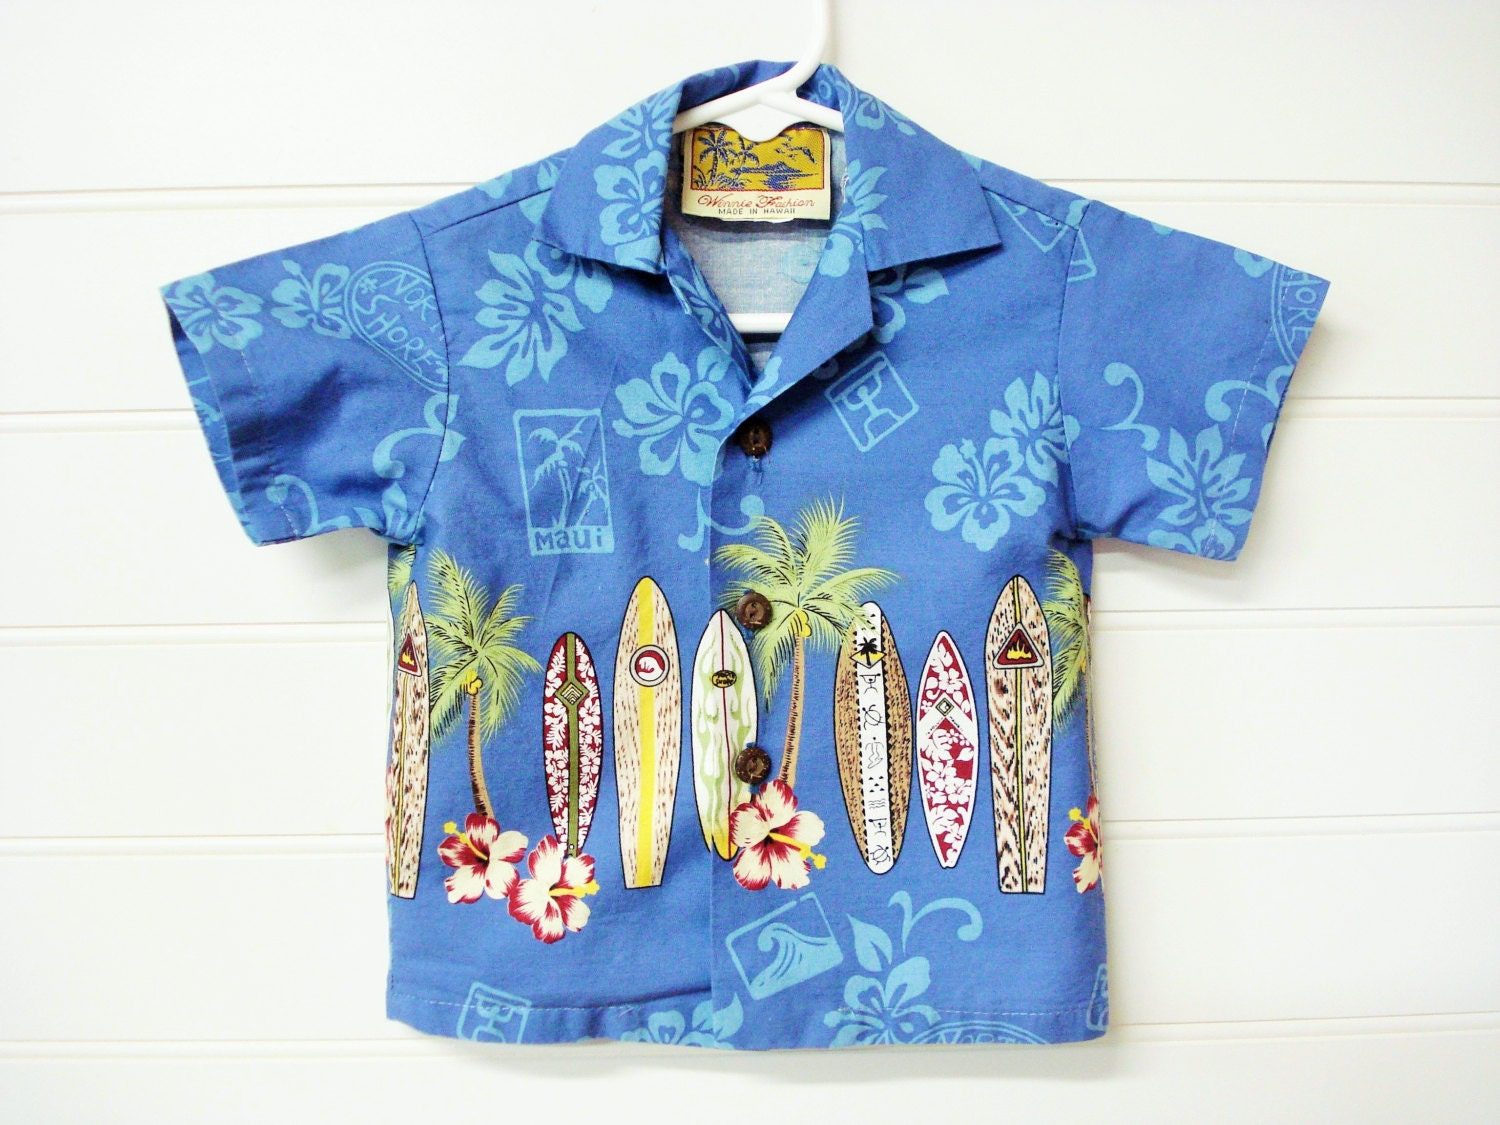 Our Hawaiian shirts our made with the same details as the men's and feature coconut buttons. Mens Aloha shirts first appeared in the 's using colorful and exotic fabrics. The early Hawaiian shirts told a story and expressed a Hawaiian lifestyle and created images of Hawaii.